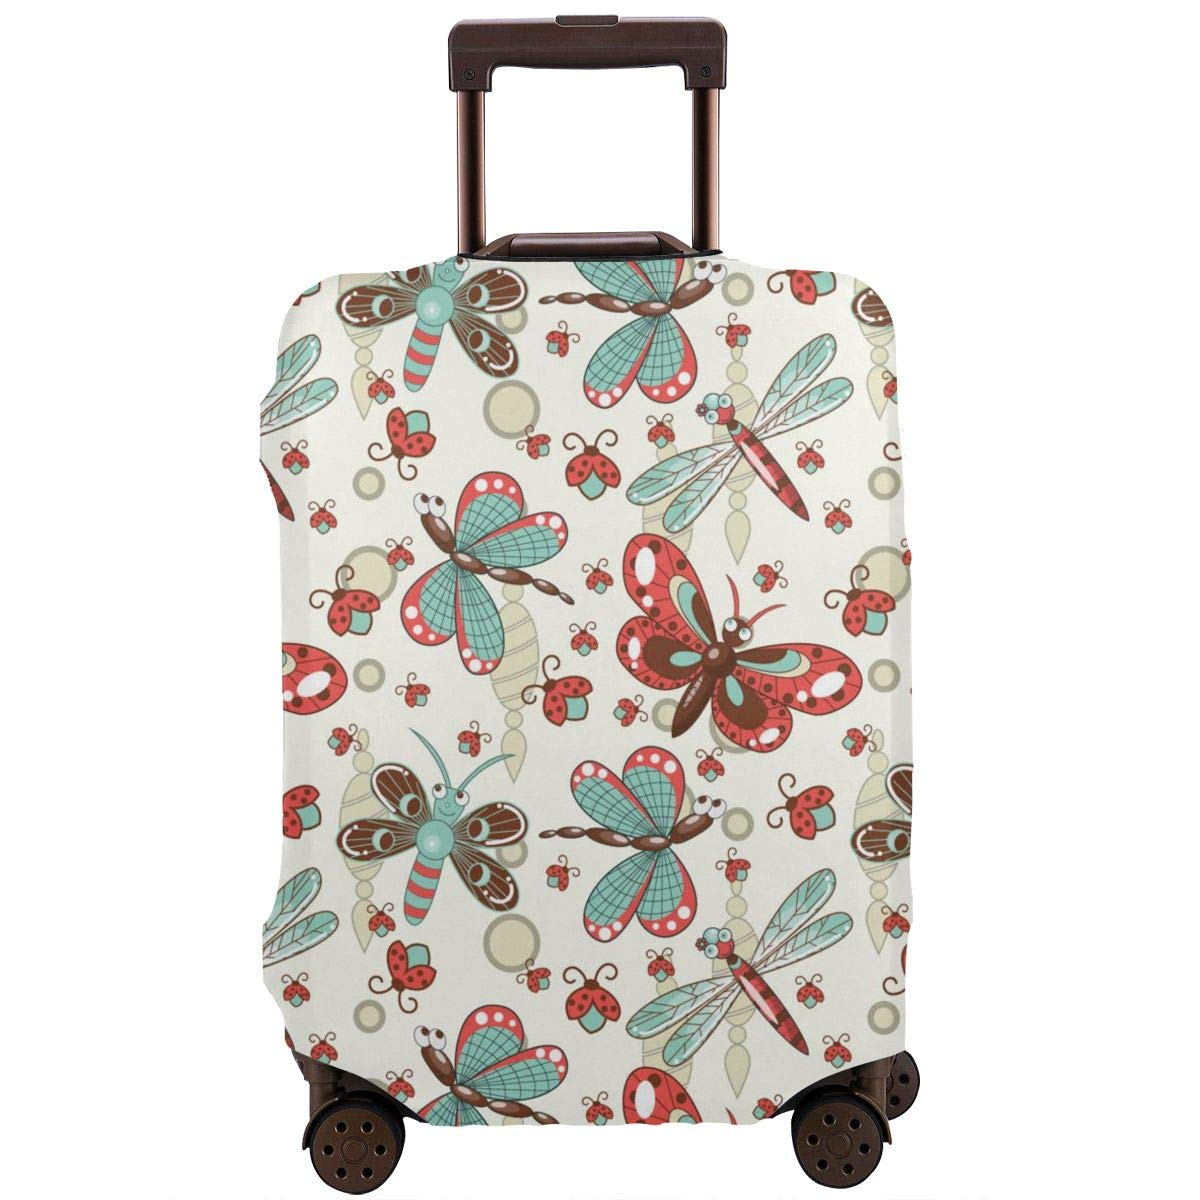 4 Size Dragonfly Ladybug Printed Business Luggage Protector Travel Baggage Suitcase Cover